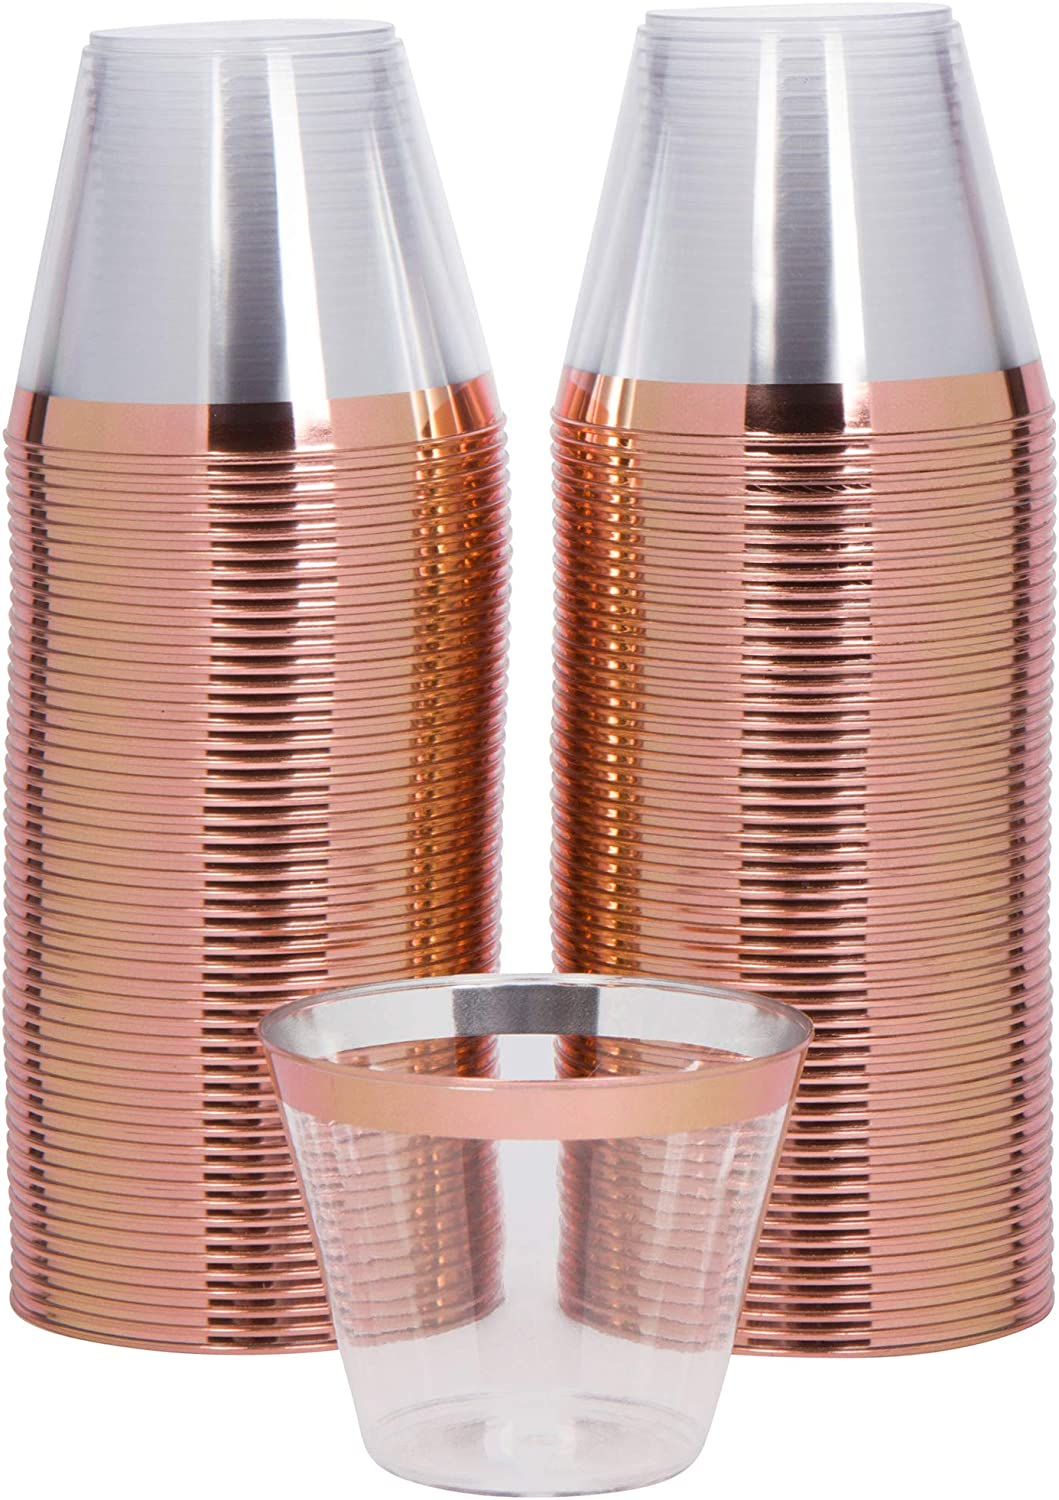 100 Rose Gold Plastic Party Cups 9oz | Perfect for Bridal Shower, Wedding, Parties | Fancy Disposable Glasses Make Great Decor for any Occasion